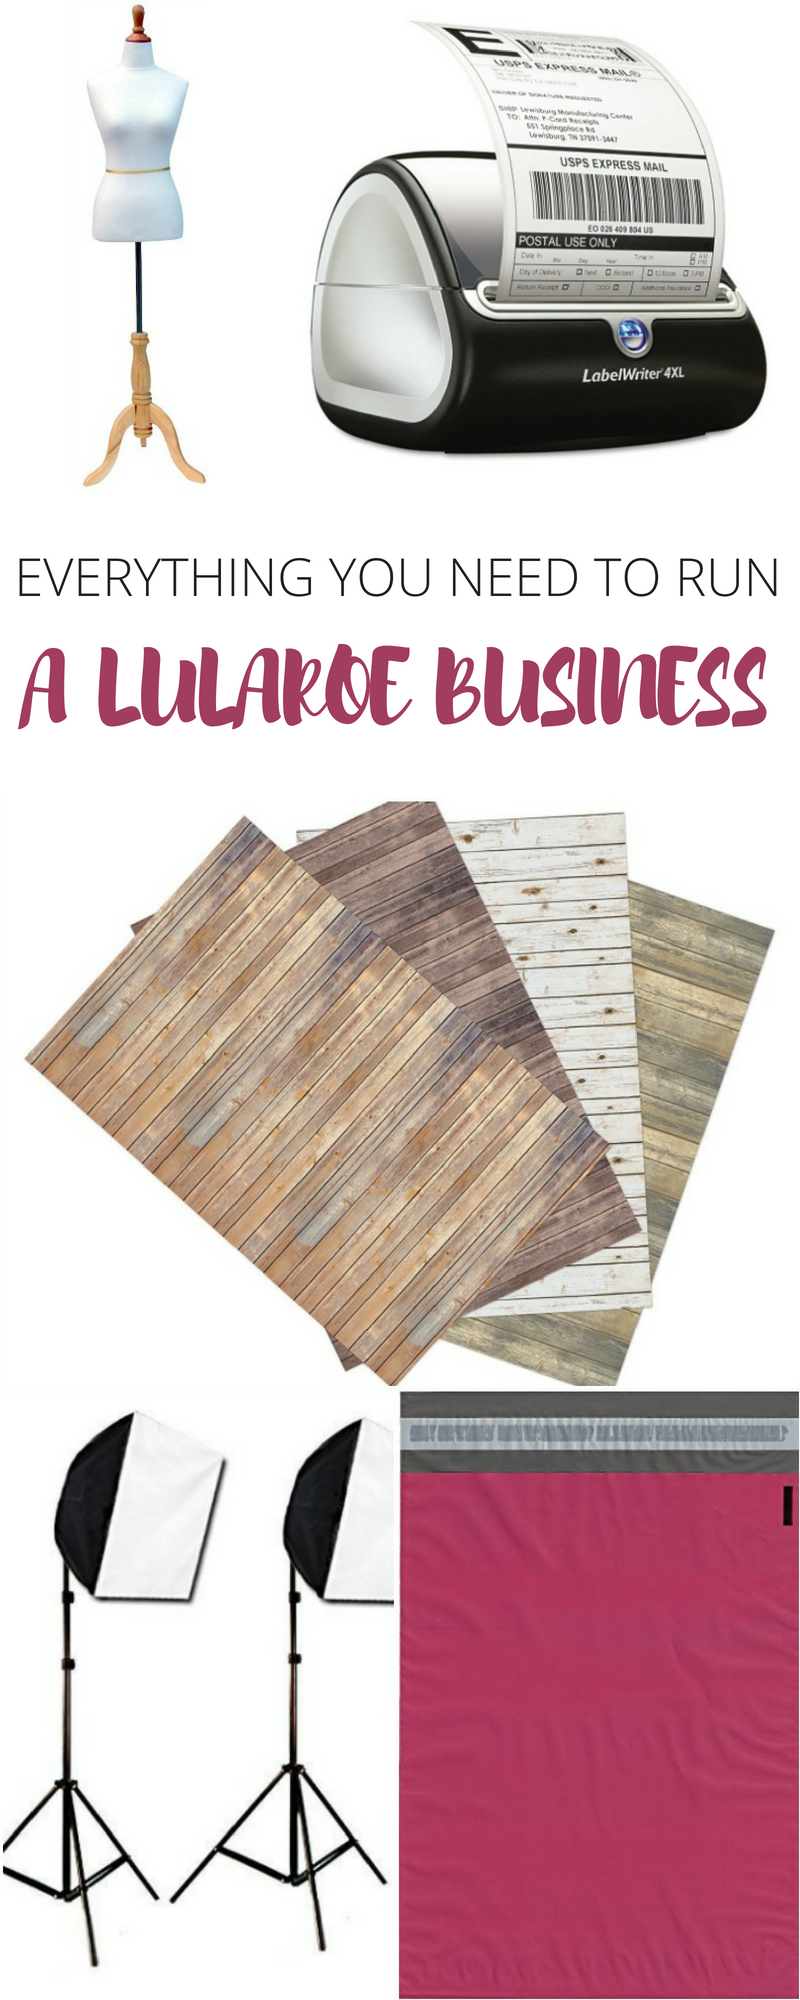 Woah... This list has absolutely everything you need to run a LuLaRoe business! If you're going to become a LuLaRoe Retailer, you've GOT to check out this list!